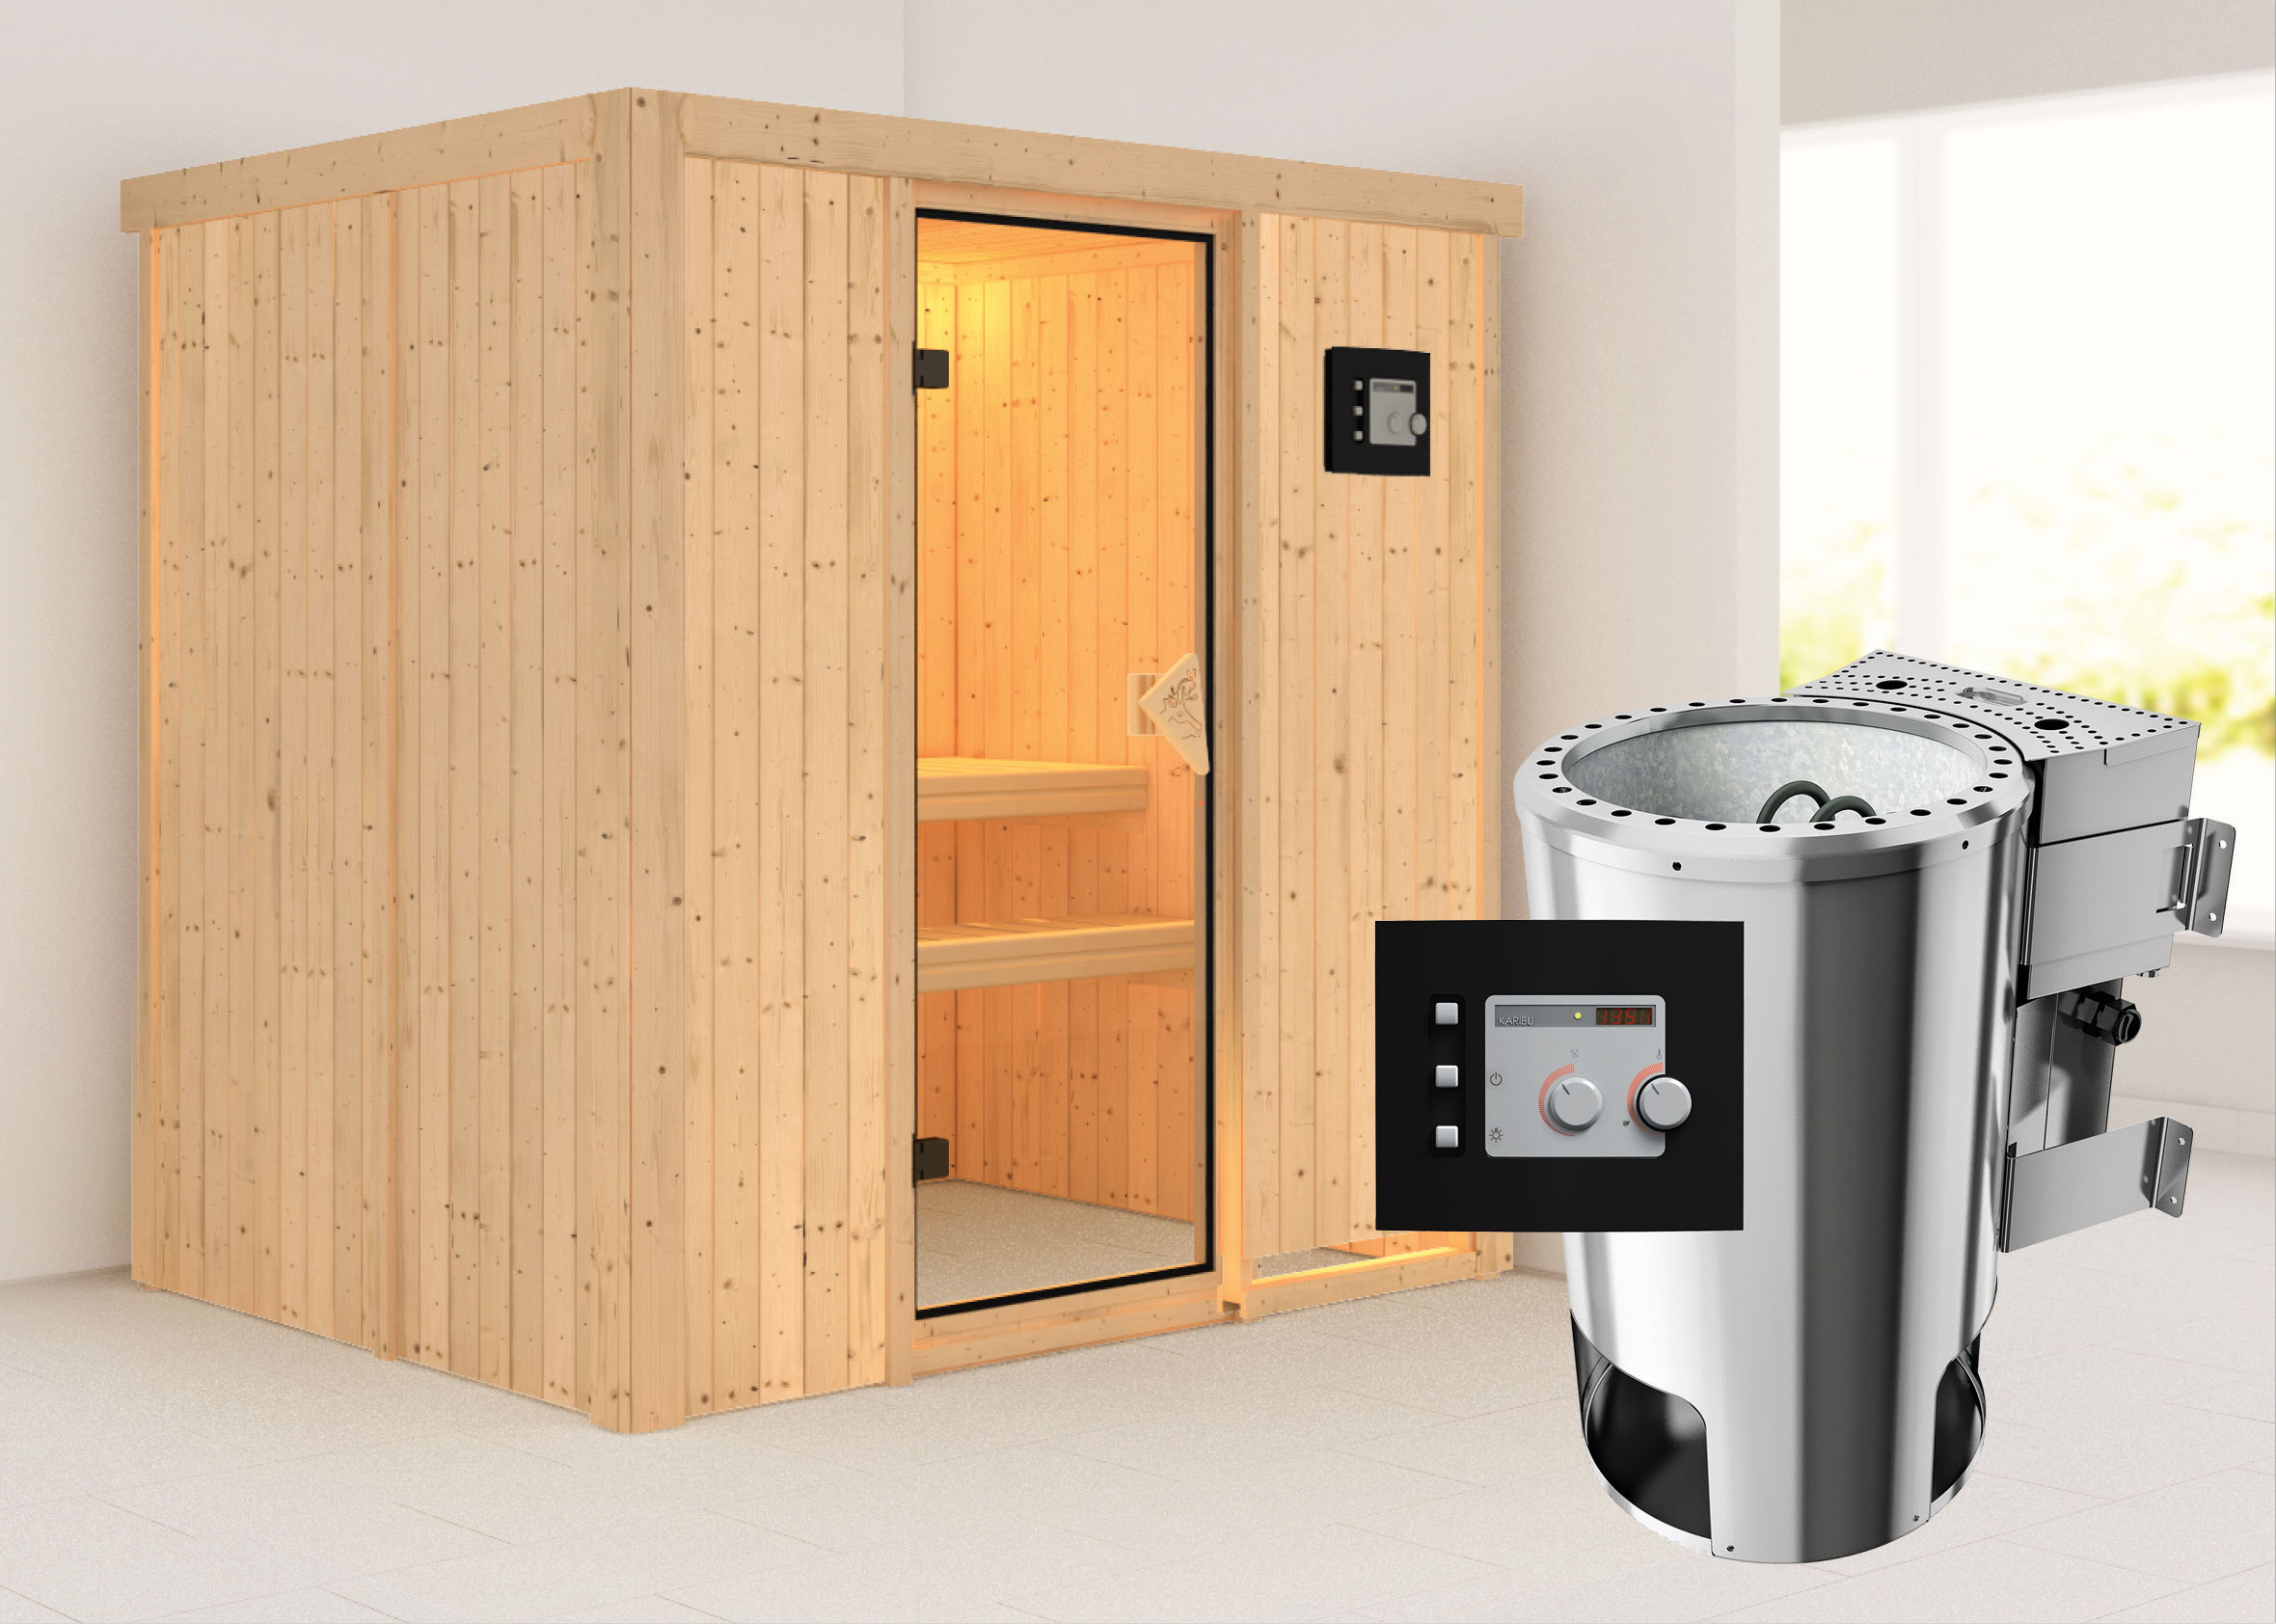 karibu sauna fanja 68mm 230v mit bio ofen 3 6 kw extern classic t r bei. Black Bedroom Furniture Sets. Home Design Ideas